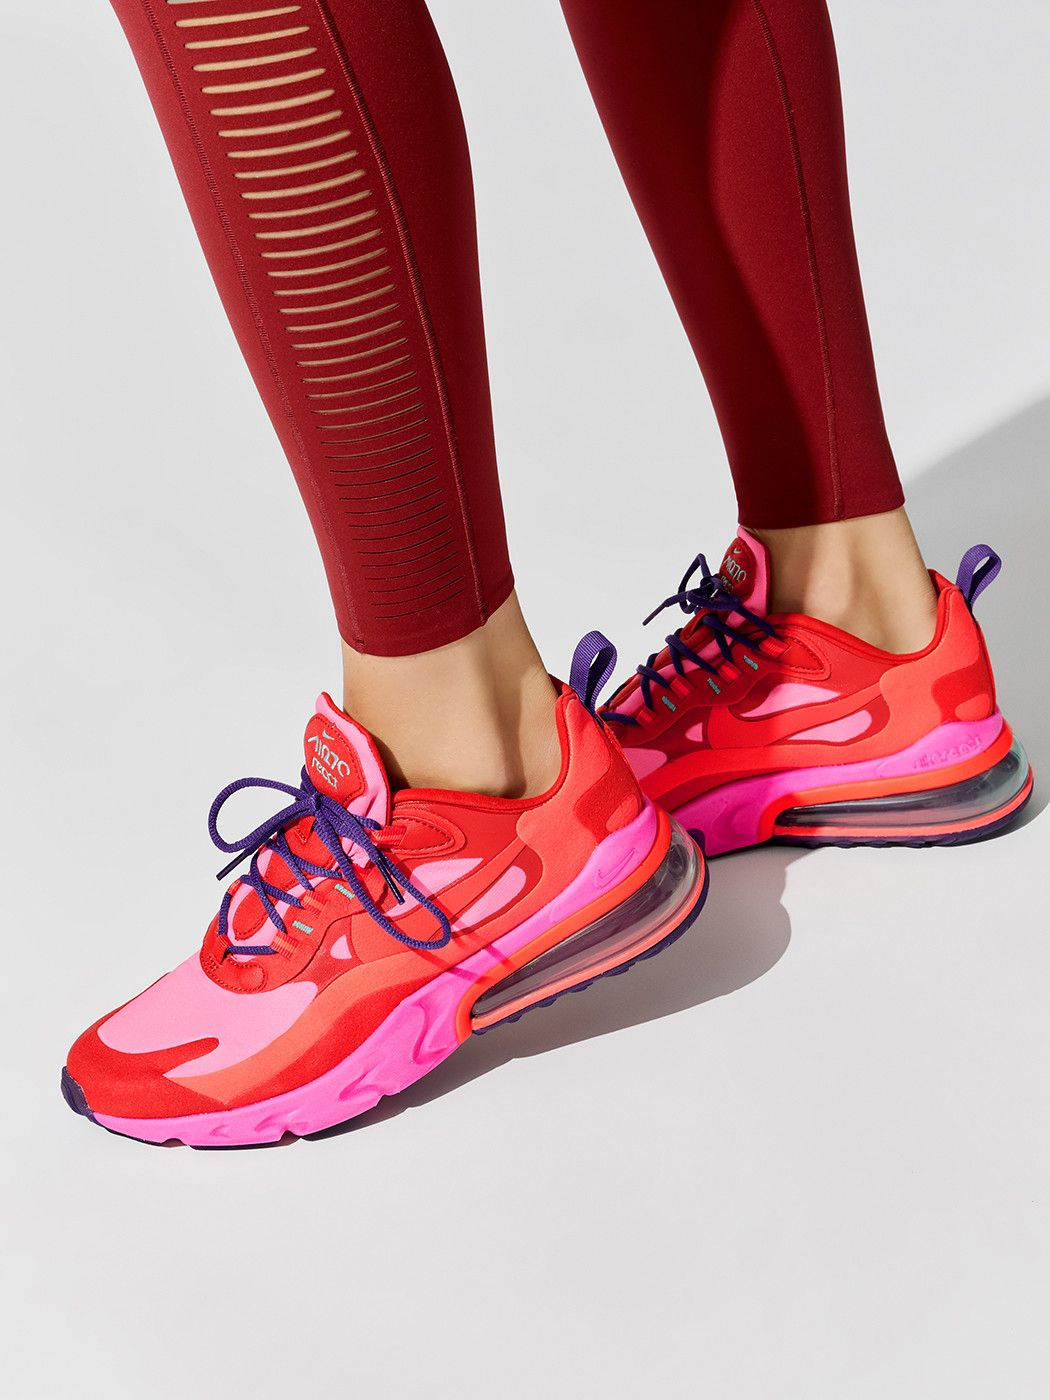 Nike Air Max 270 React In Mystic Red Brt Crimson Pink Blast Habanero Red Court Purple Aurora Green Nike Air Max Air Max 270 Nike